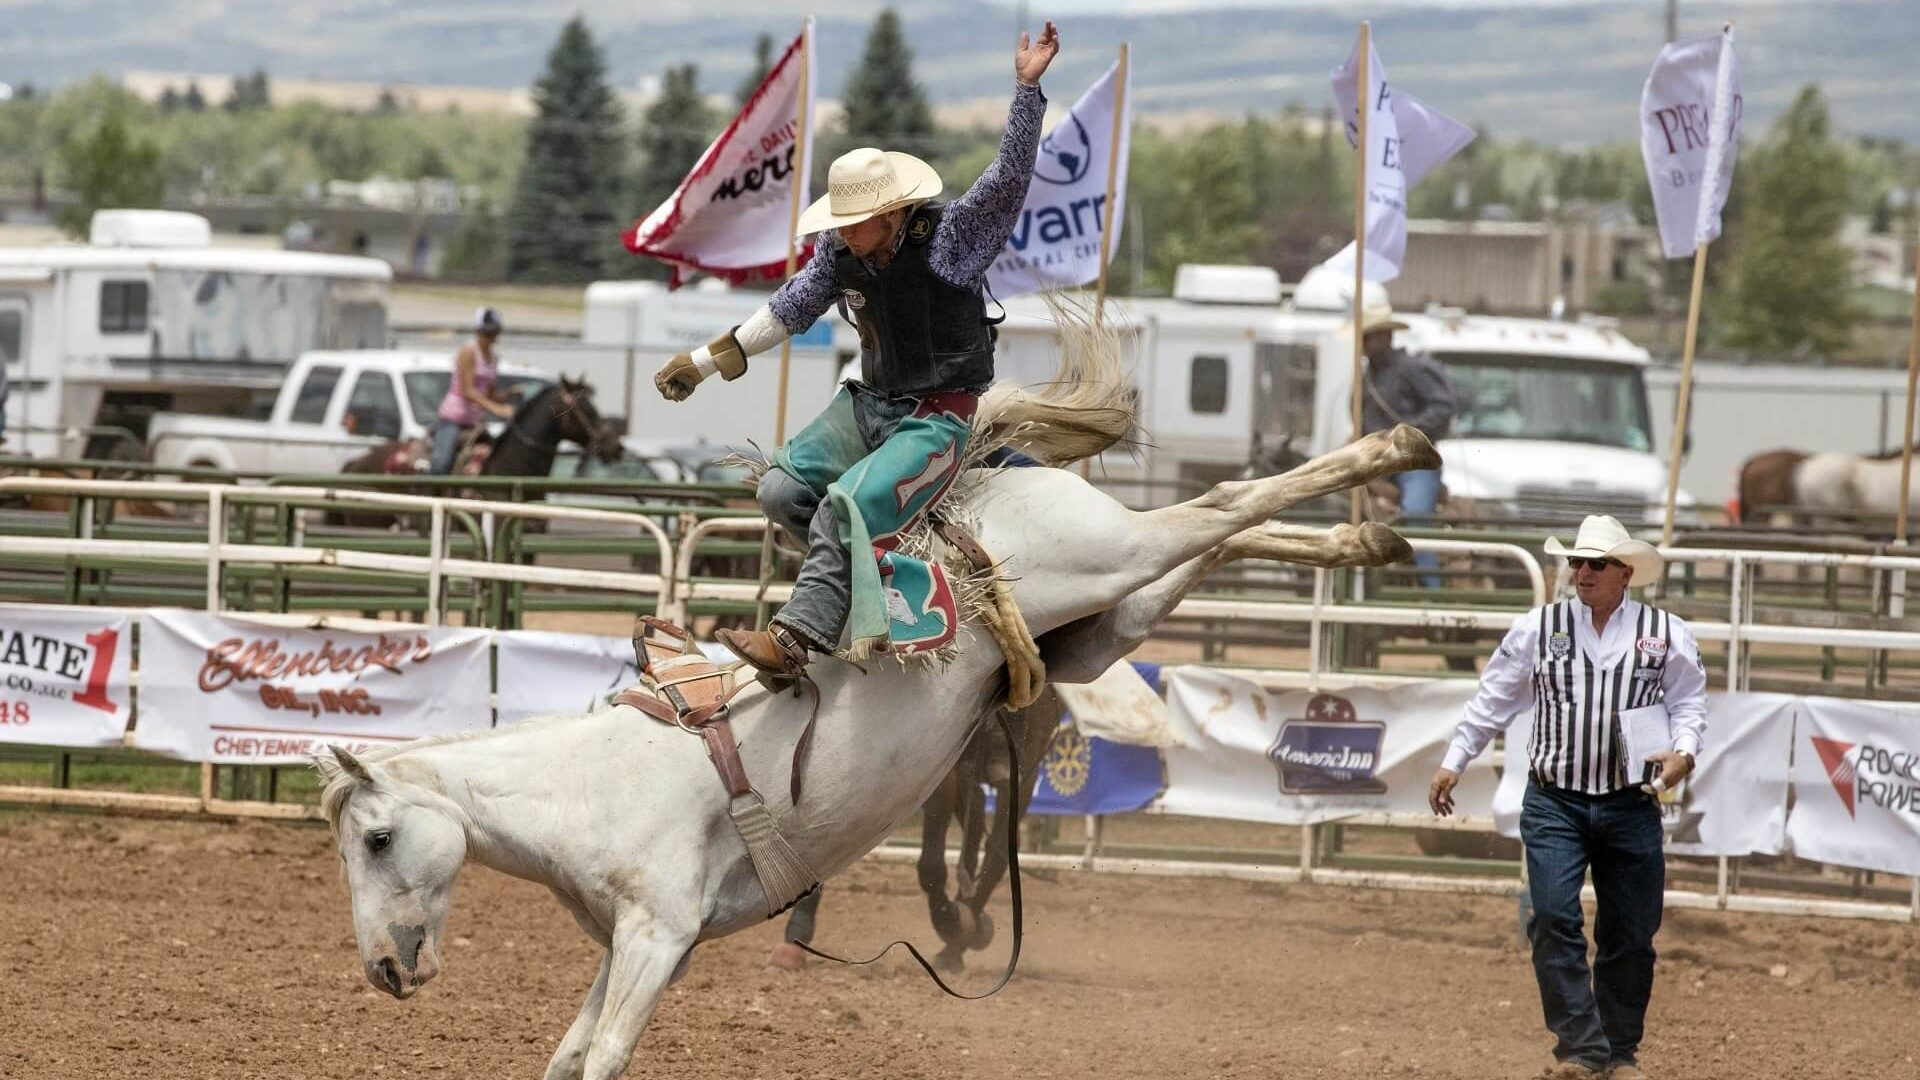 Cowboy Standing on a Bucking Bronco at the Eagle Rodeo